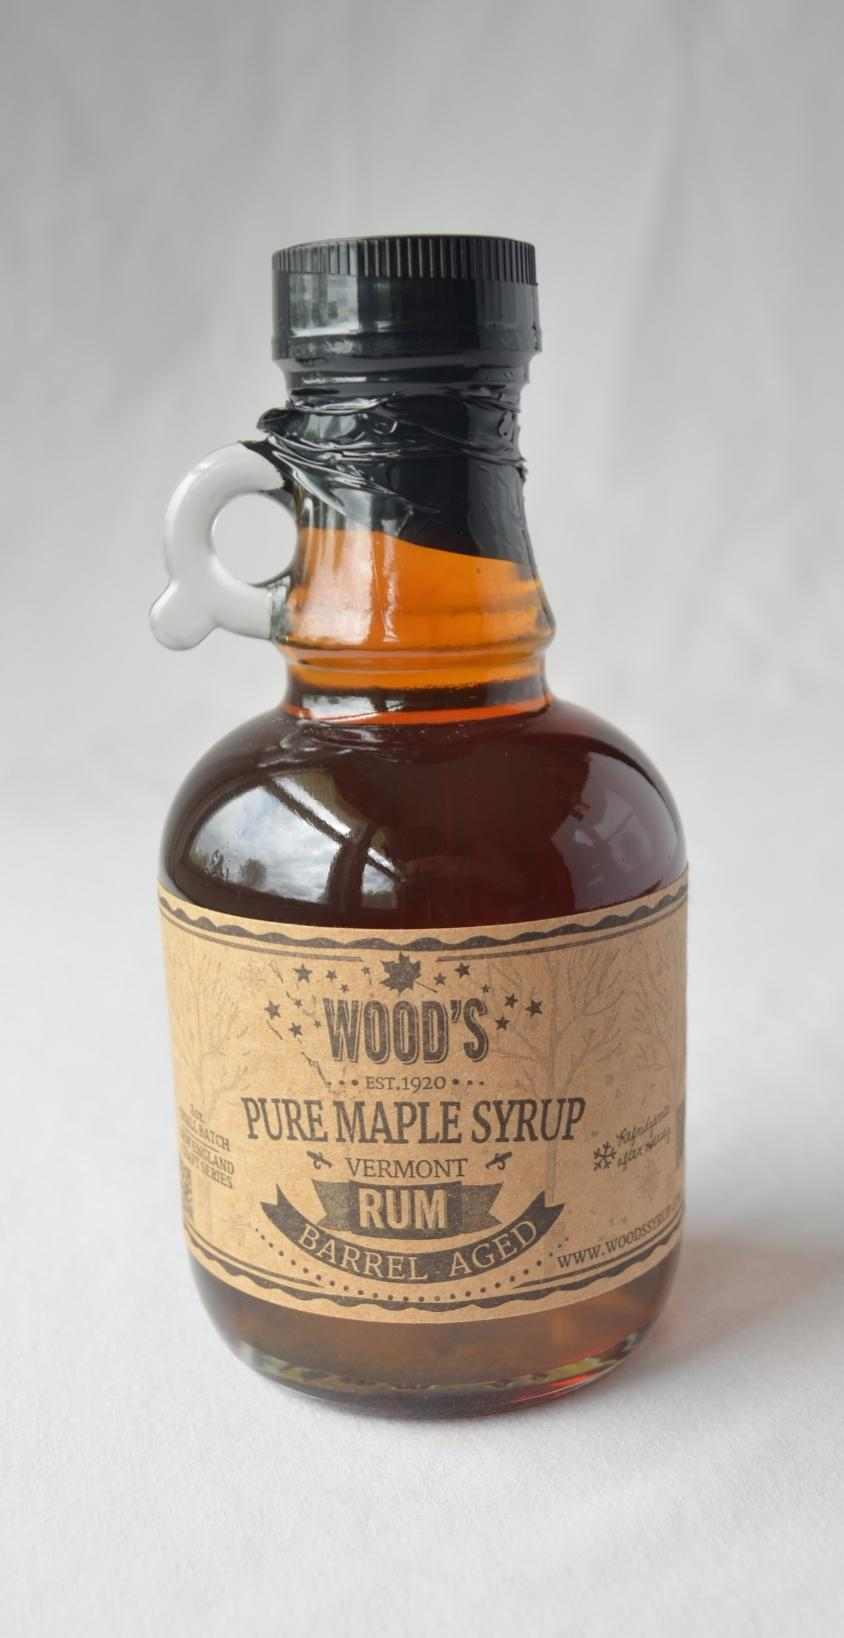 Rum Barrel Aged Syrup by Woods Vermont Maple Syrup